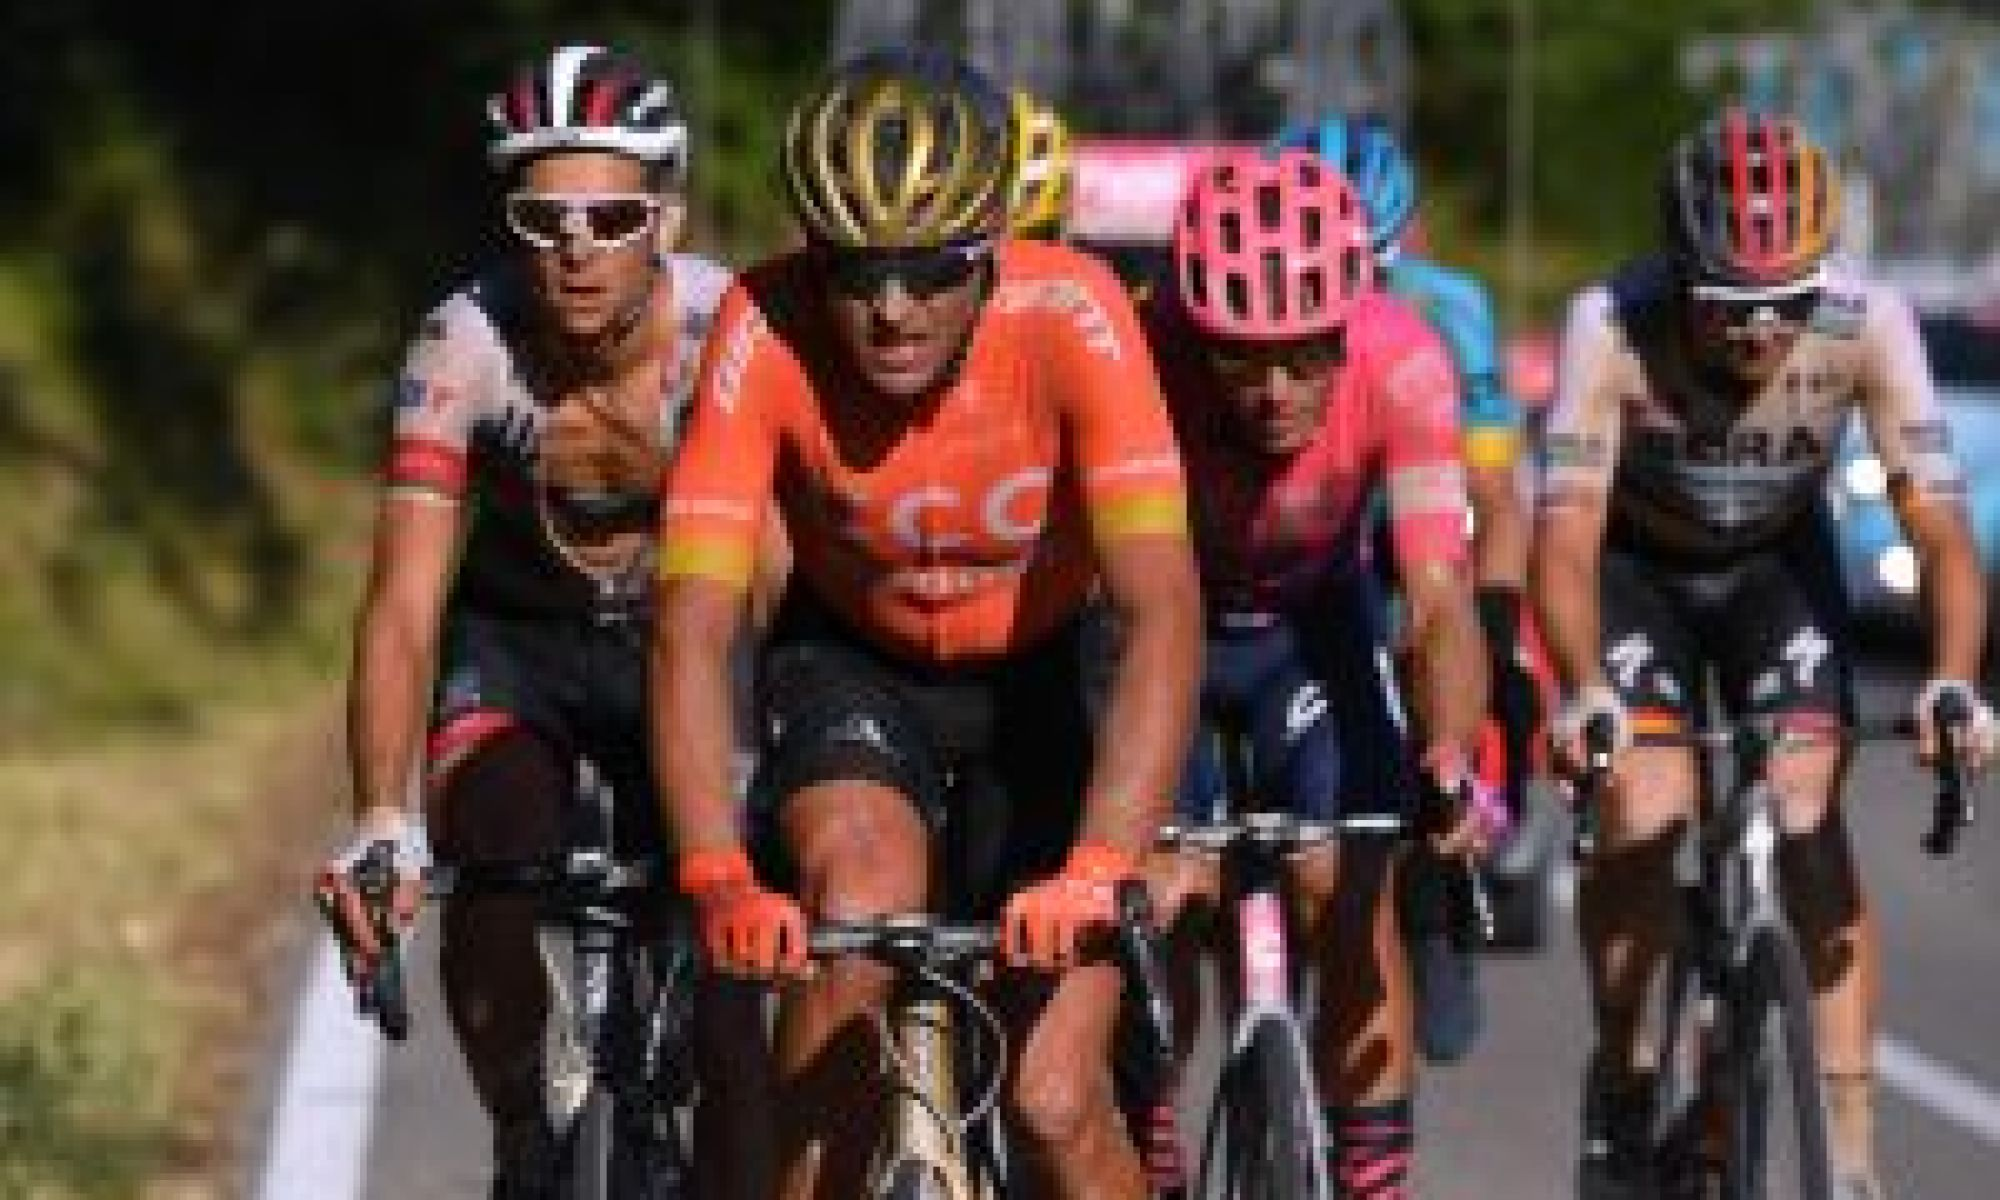 <div>'I have no options in this team anymore': Greg Van Avermaet confirms he'll leave CCC Team</div>